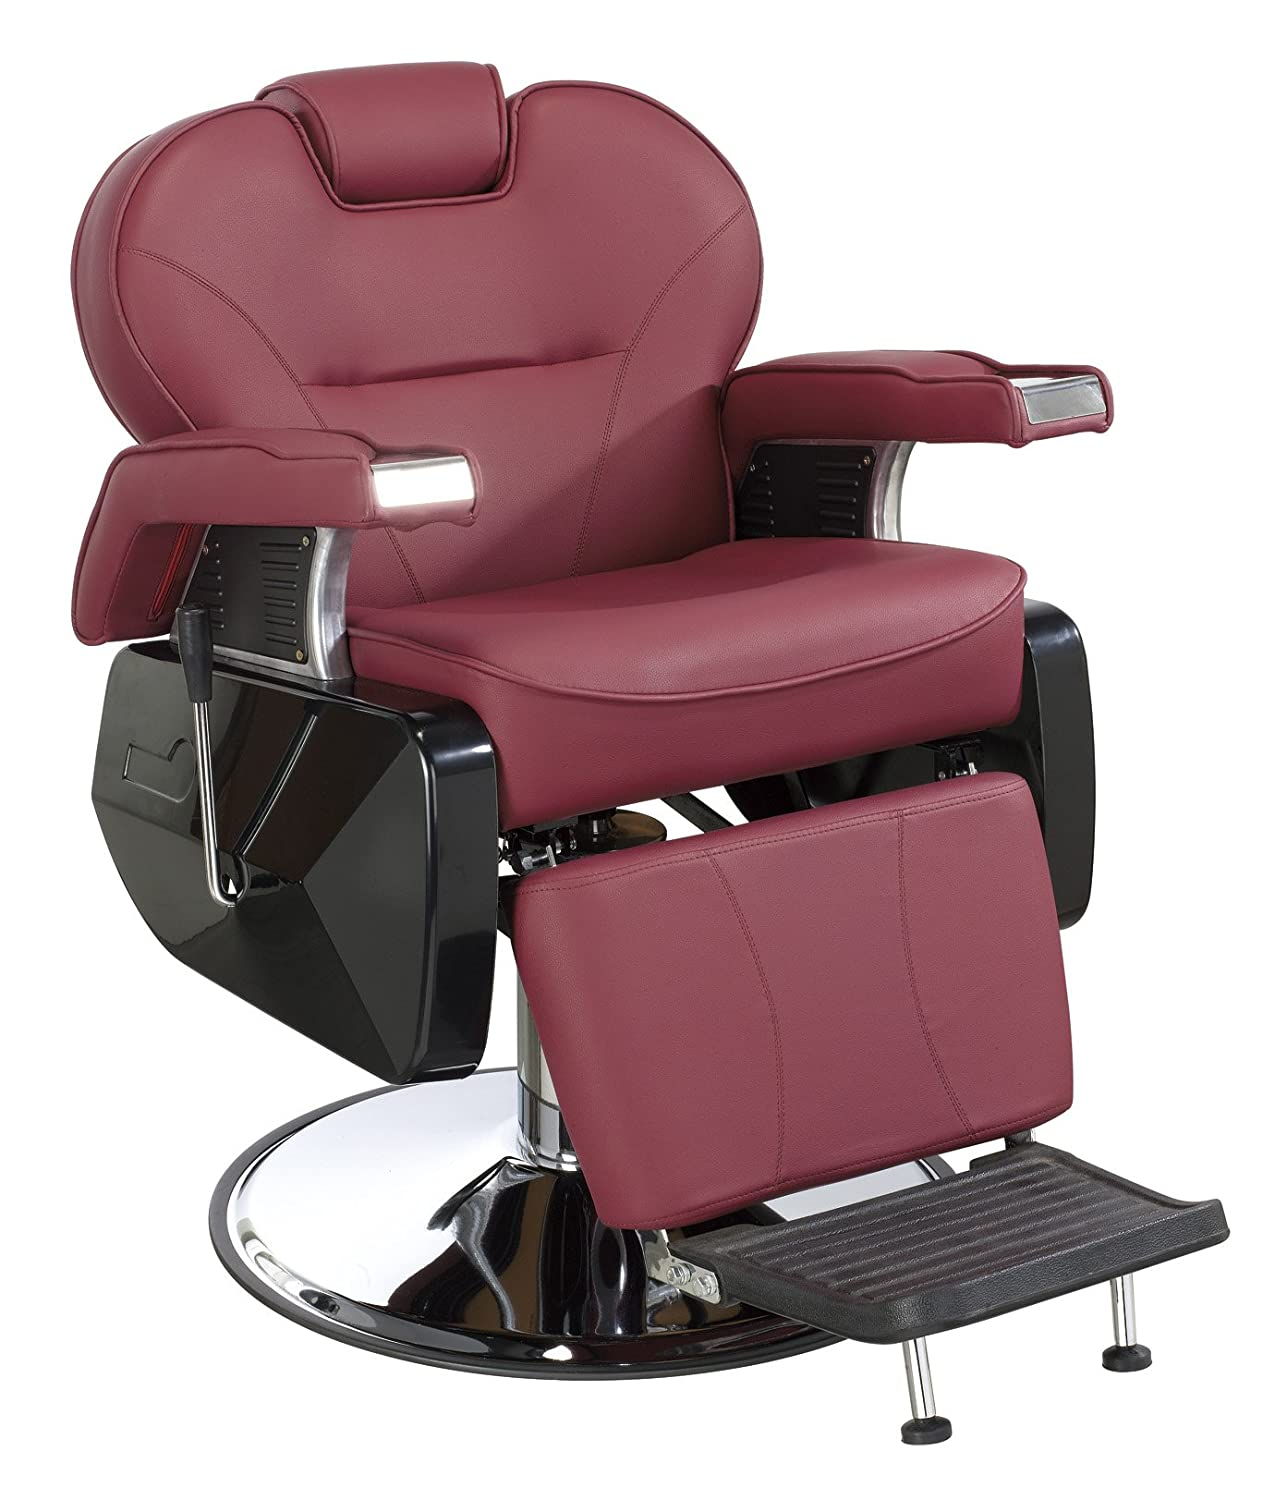 Amazon All Purpose Hydraulic Recline Barber Chair Salon Spa J